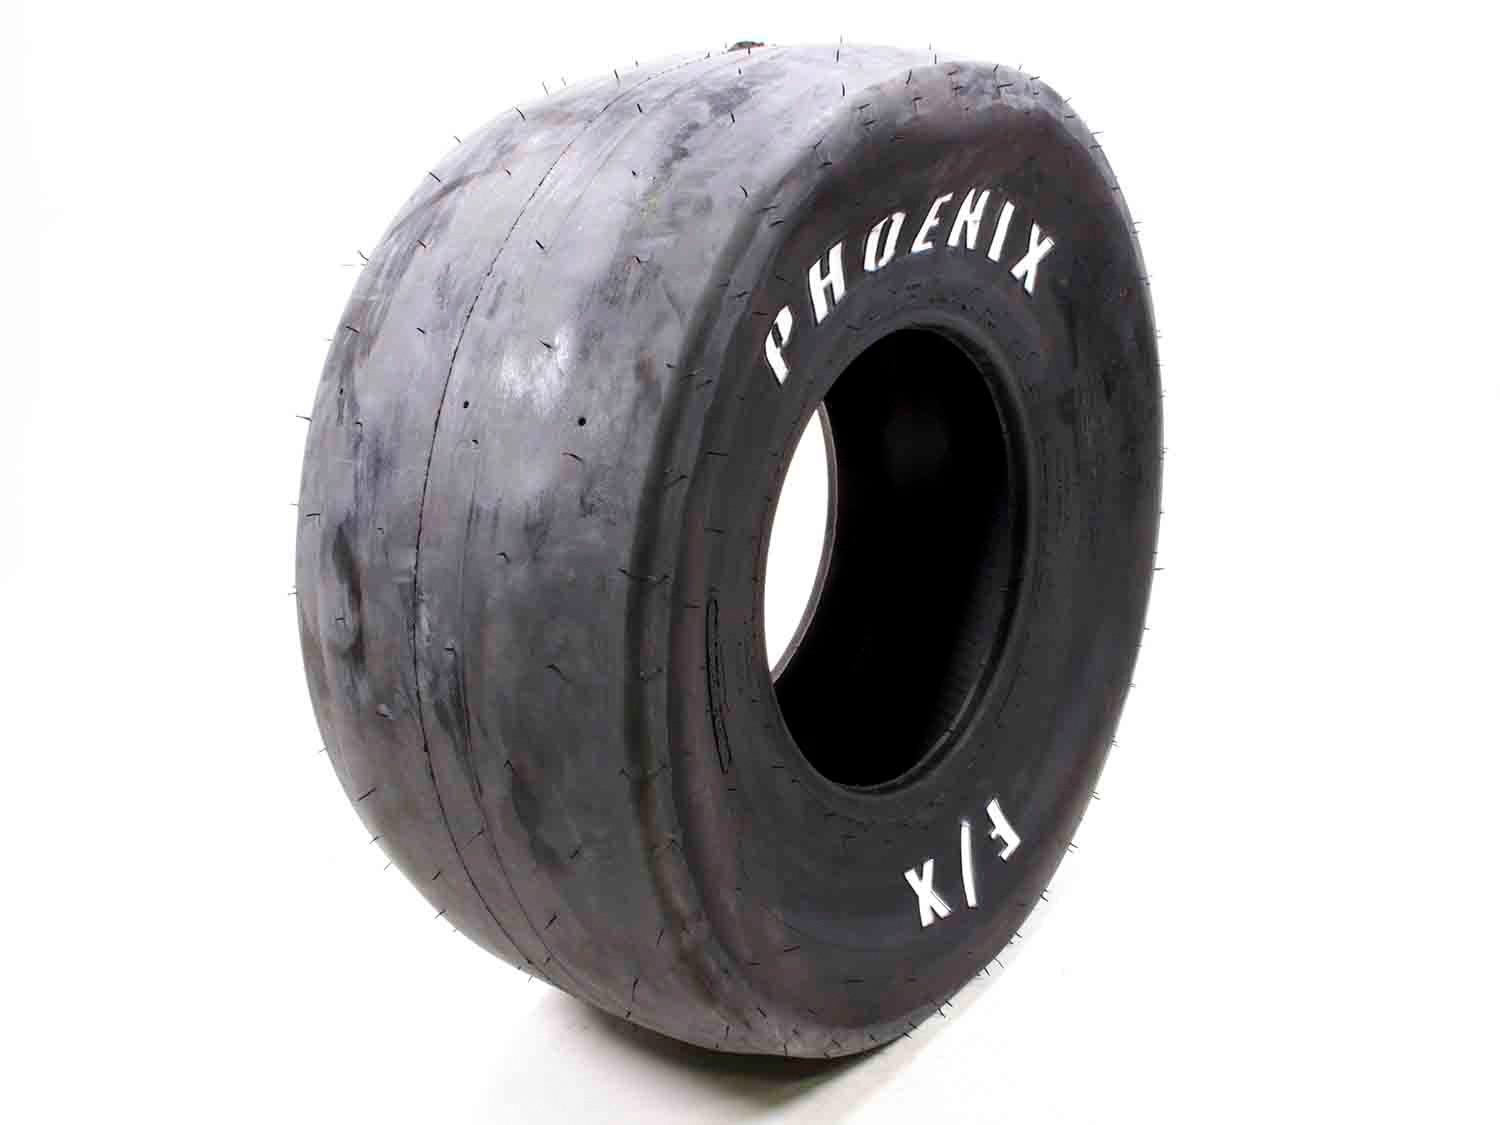 Phoenix Racing Tires PH55R Tire, Drag FX Slick, 32.0 x 13.5-15, Bias Ply, F9 Compound, White Letter Sidewall, Each